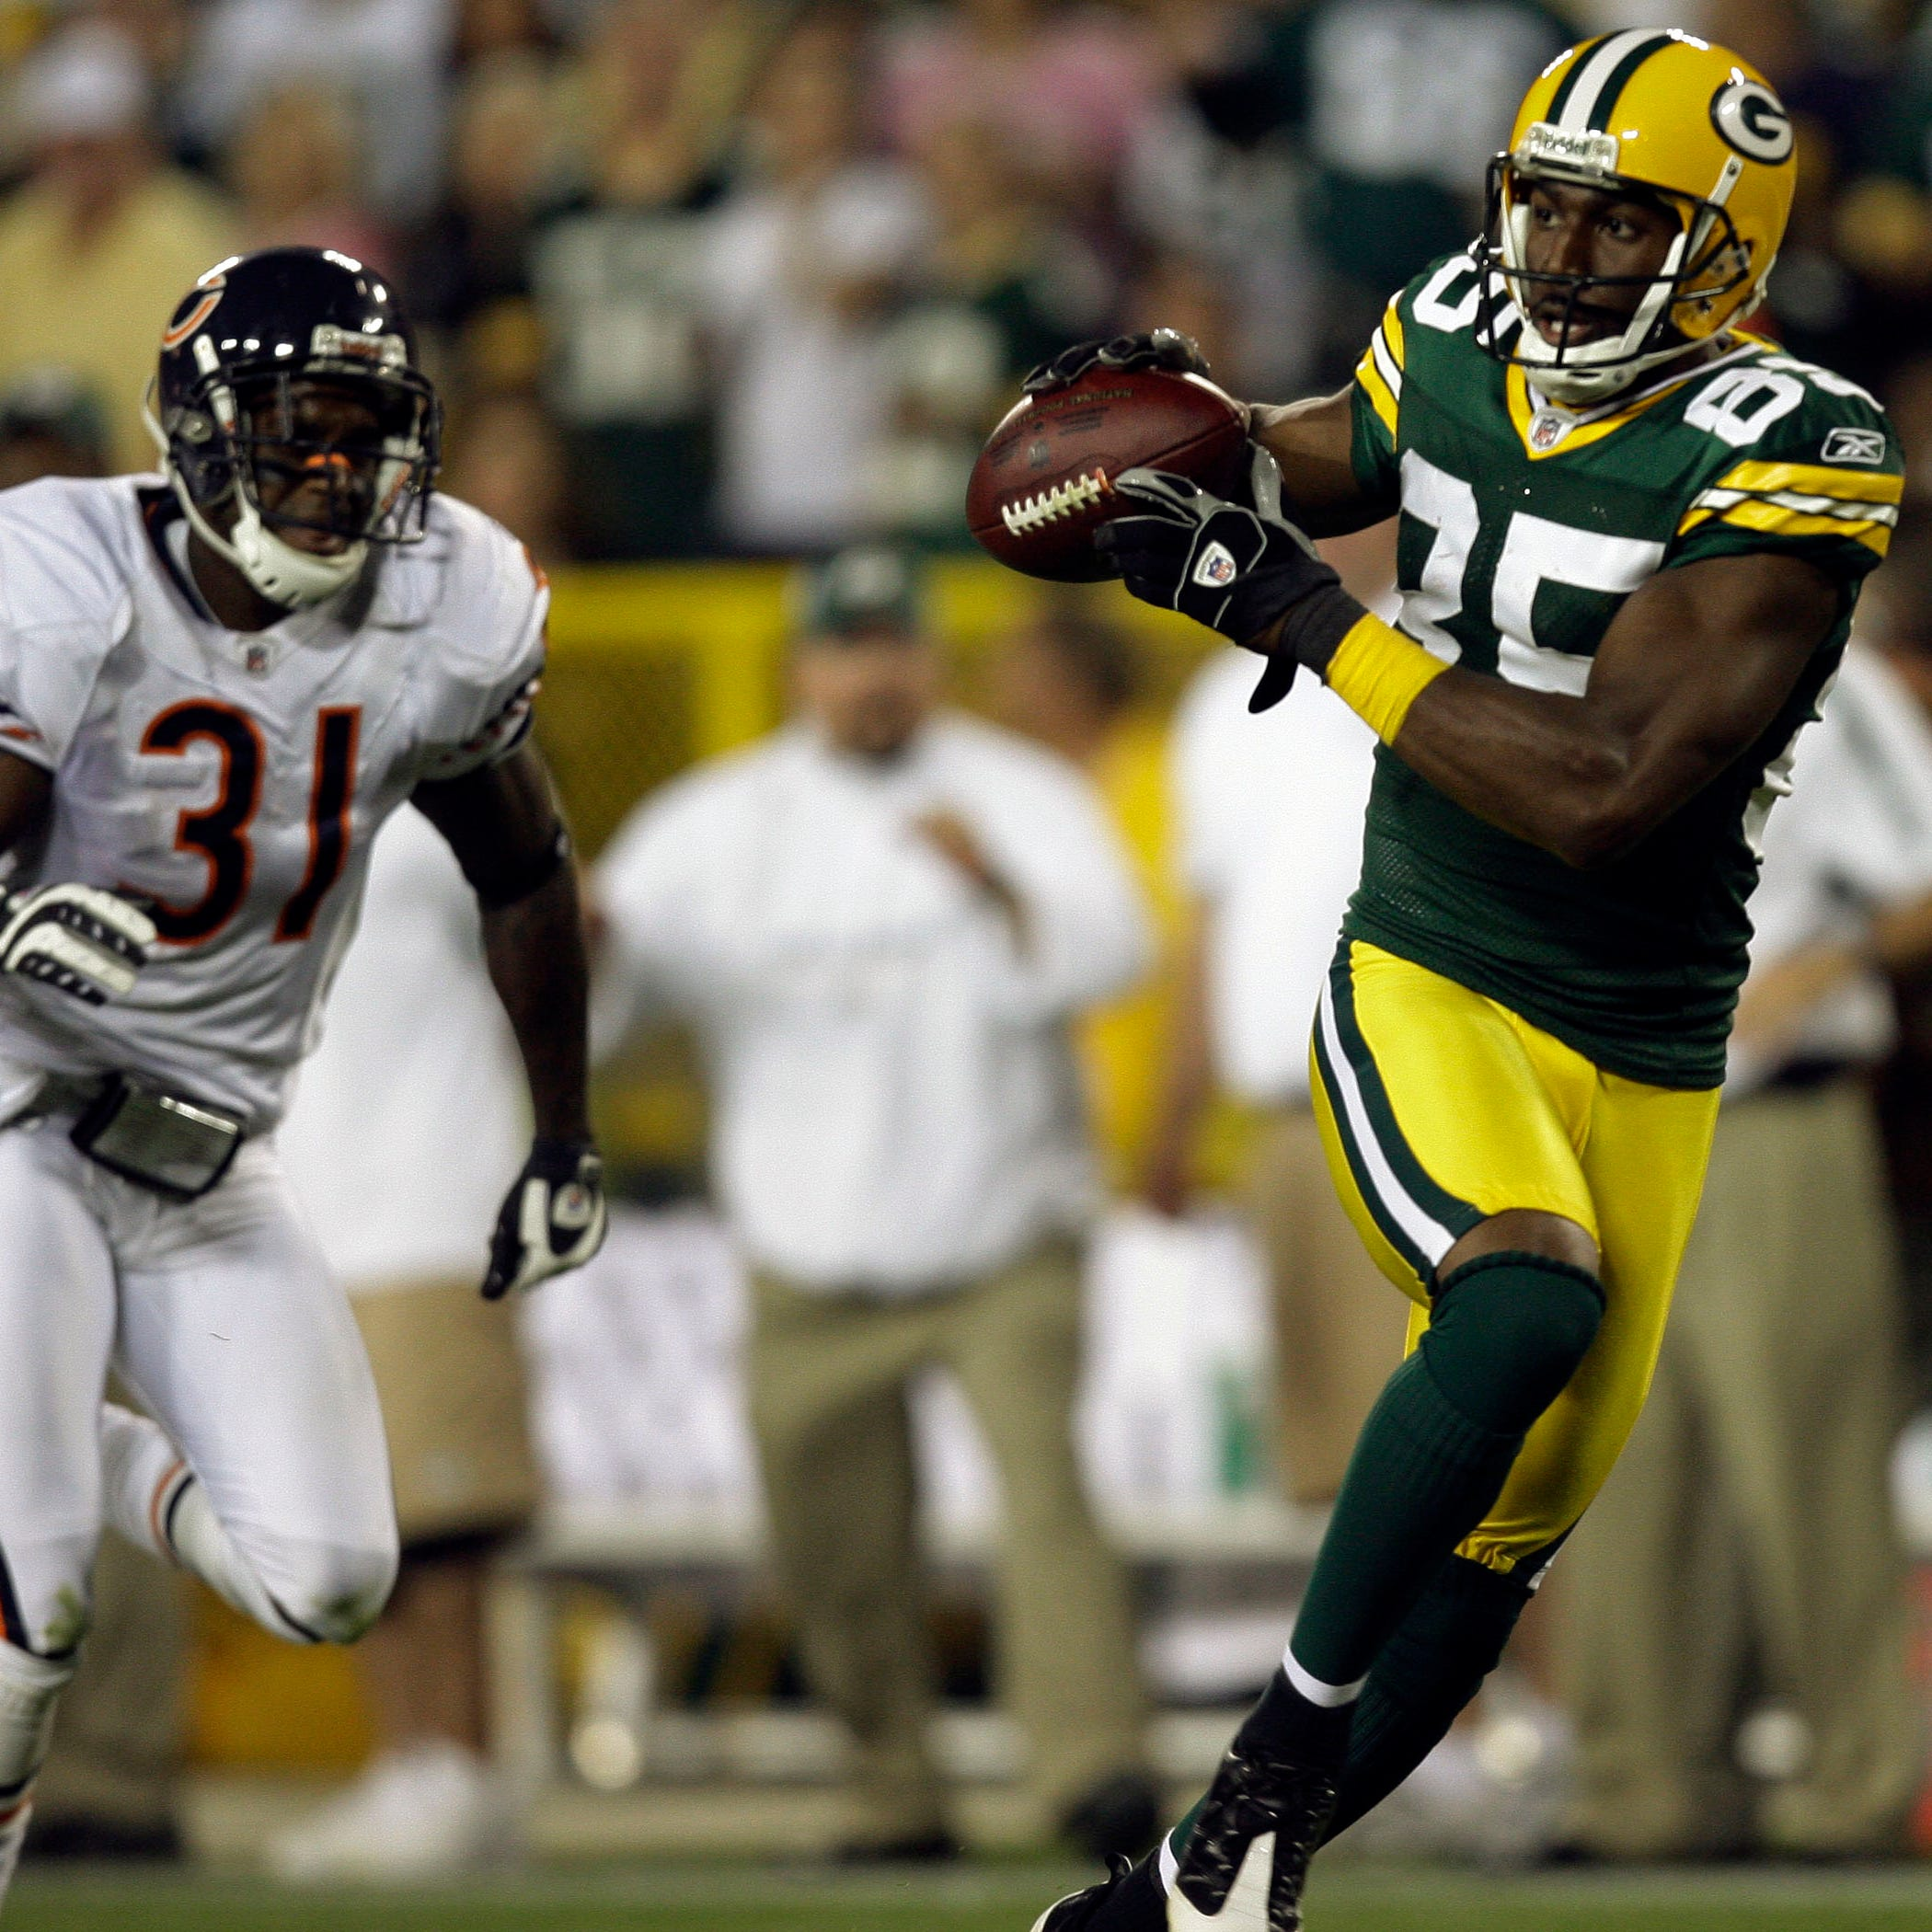 Packers have history of exciting season openers against archrival Bears